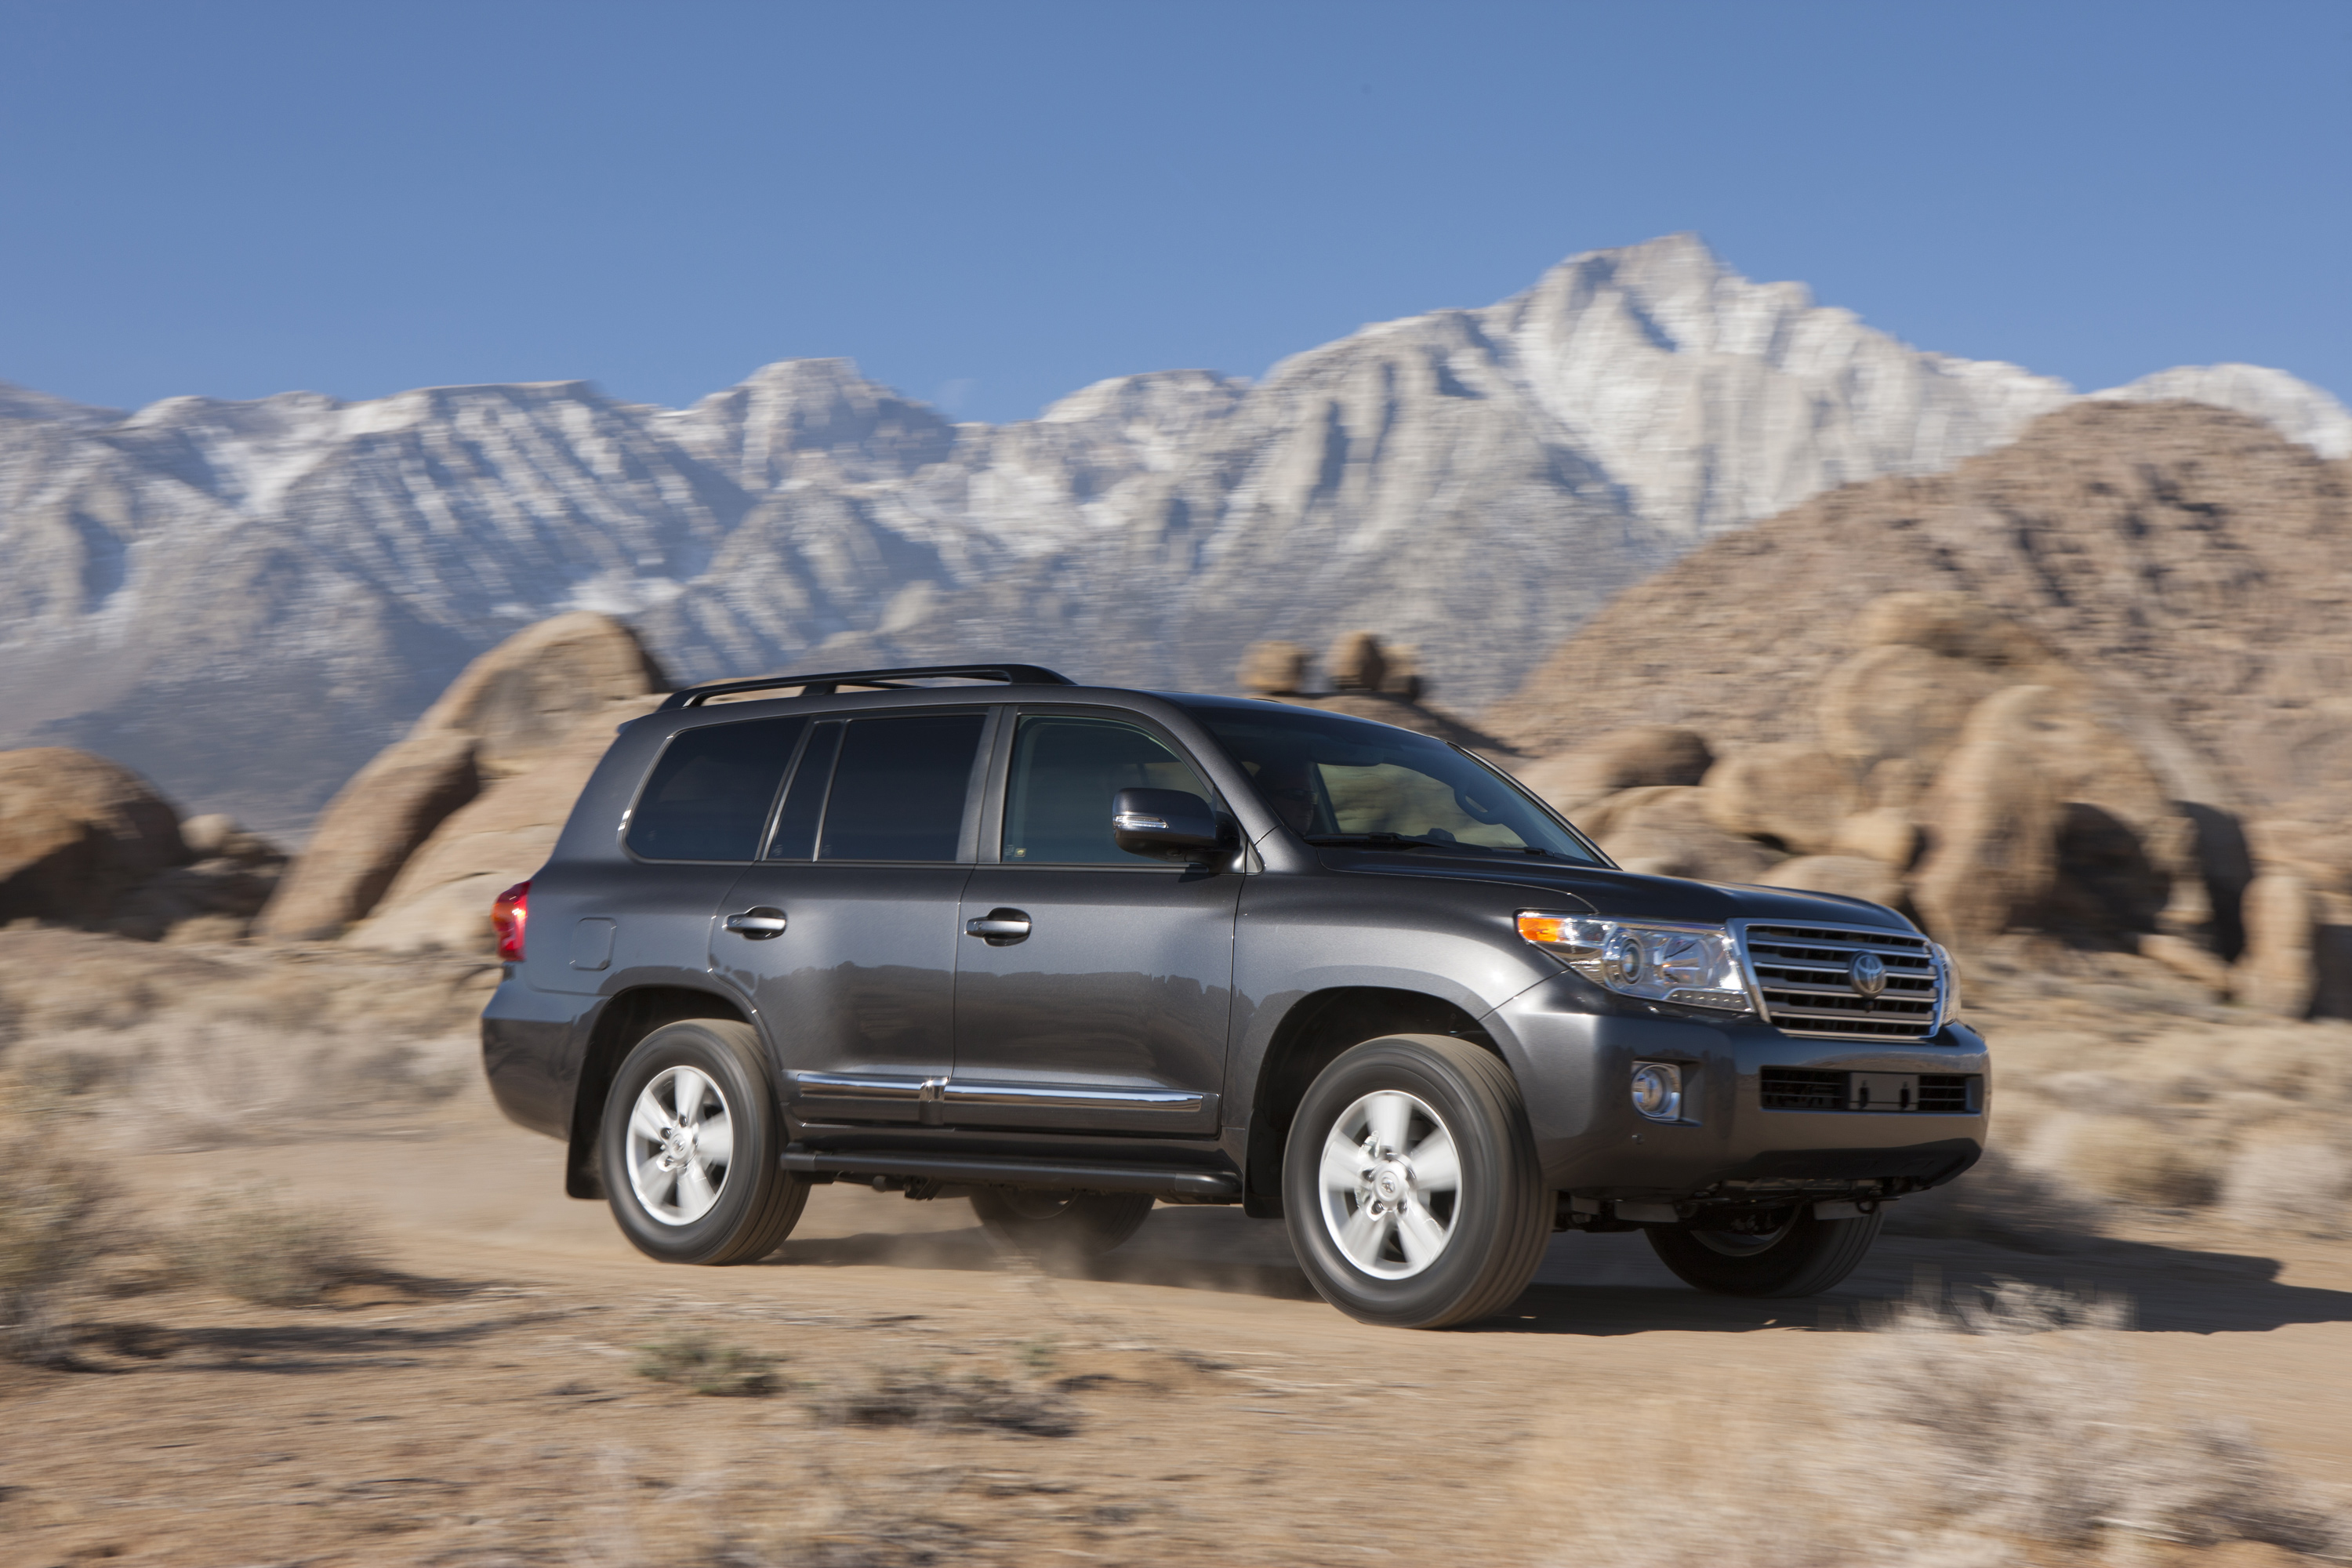 Toyota Land Cruiser Reviews Specs Prices Photos And Videos Top 300 2015 2014